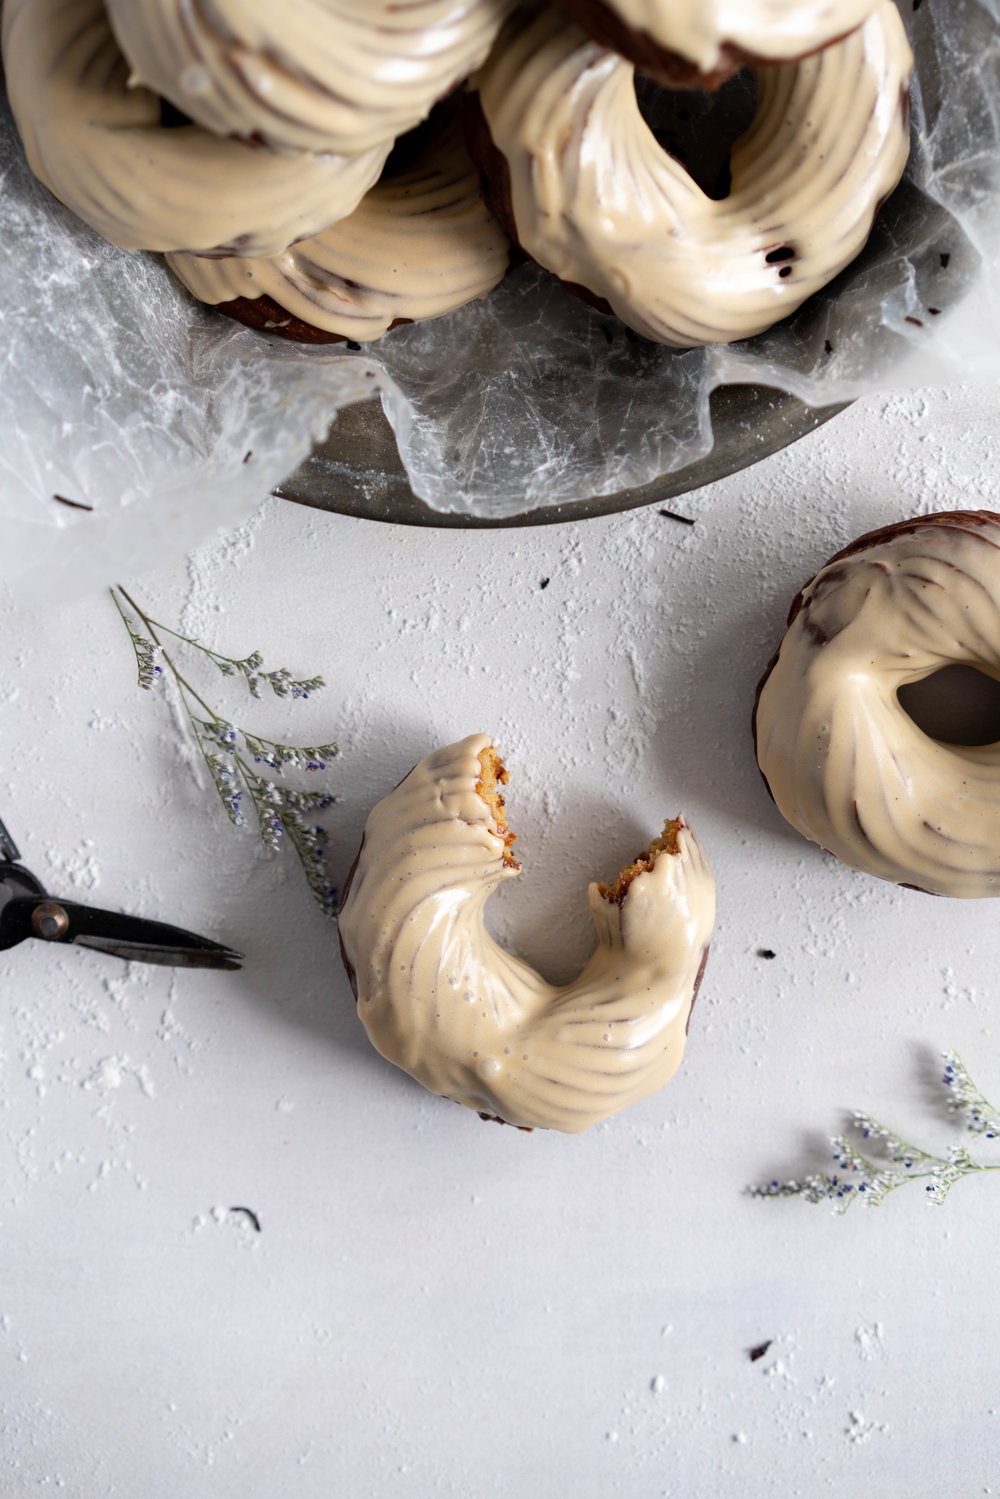 Earl Grey Crullers with Earl Grey Glaze. Perfectly flaky earl grey infused choux pastry is fried into golden brown crullers, then glazed with a delicately flavoured Earl Grey Glaze. #earlgrey #cruller #doughnuts #donuts #baking #fried #choux #chouxpastry